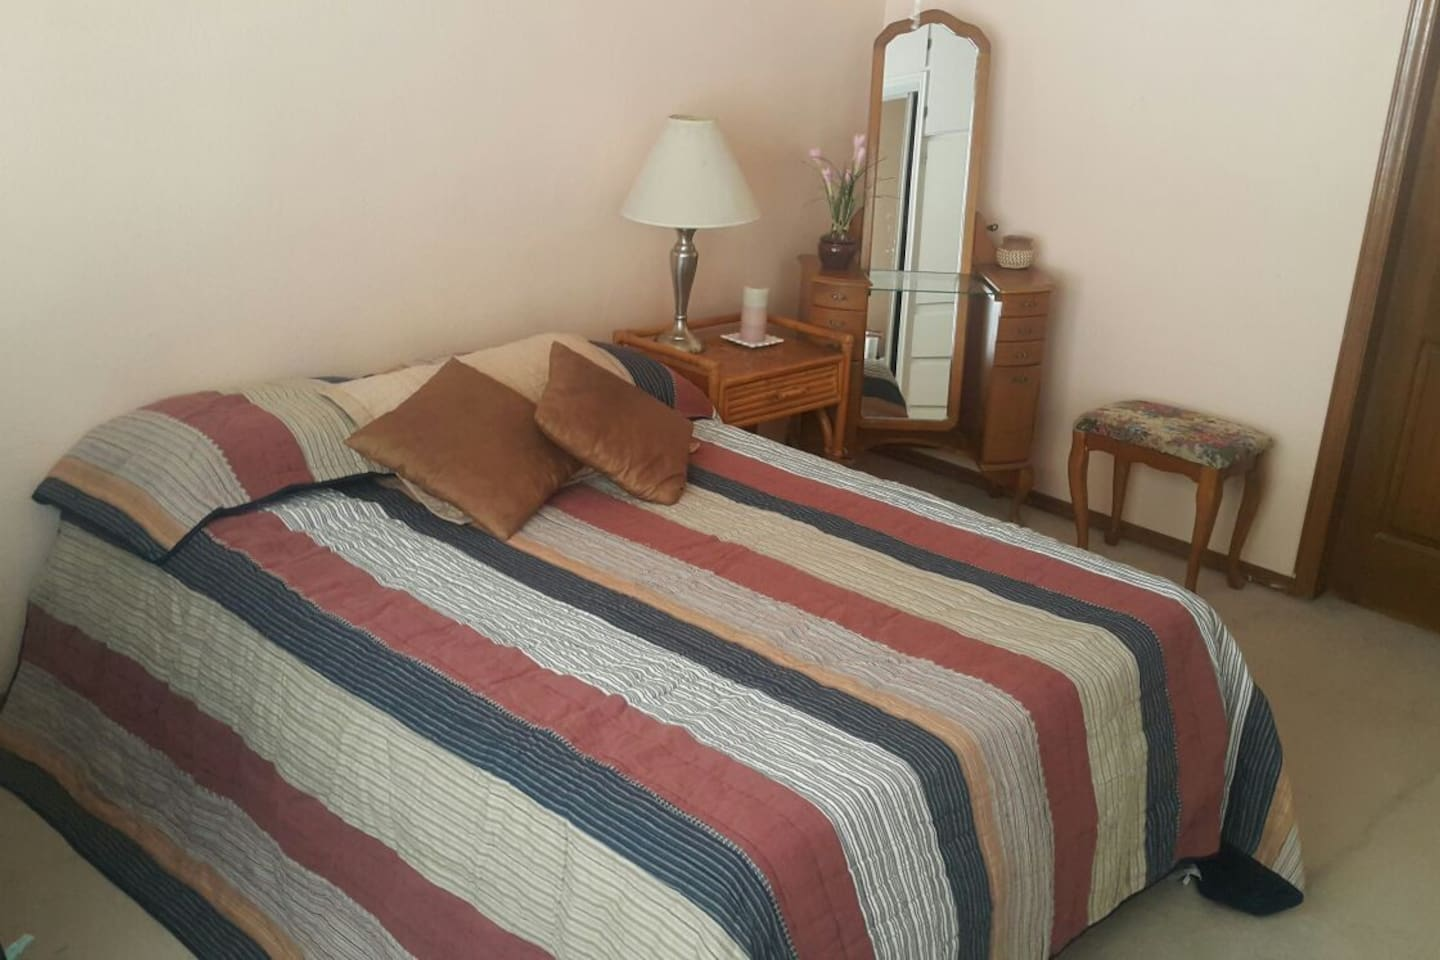 View of the bedroom.